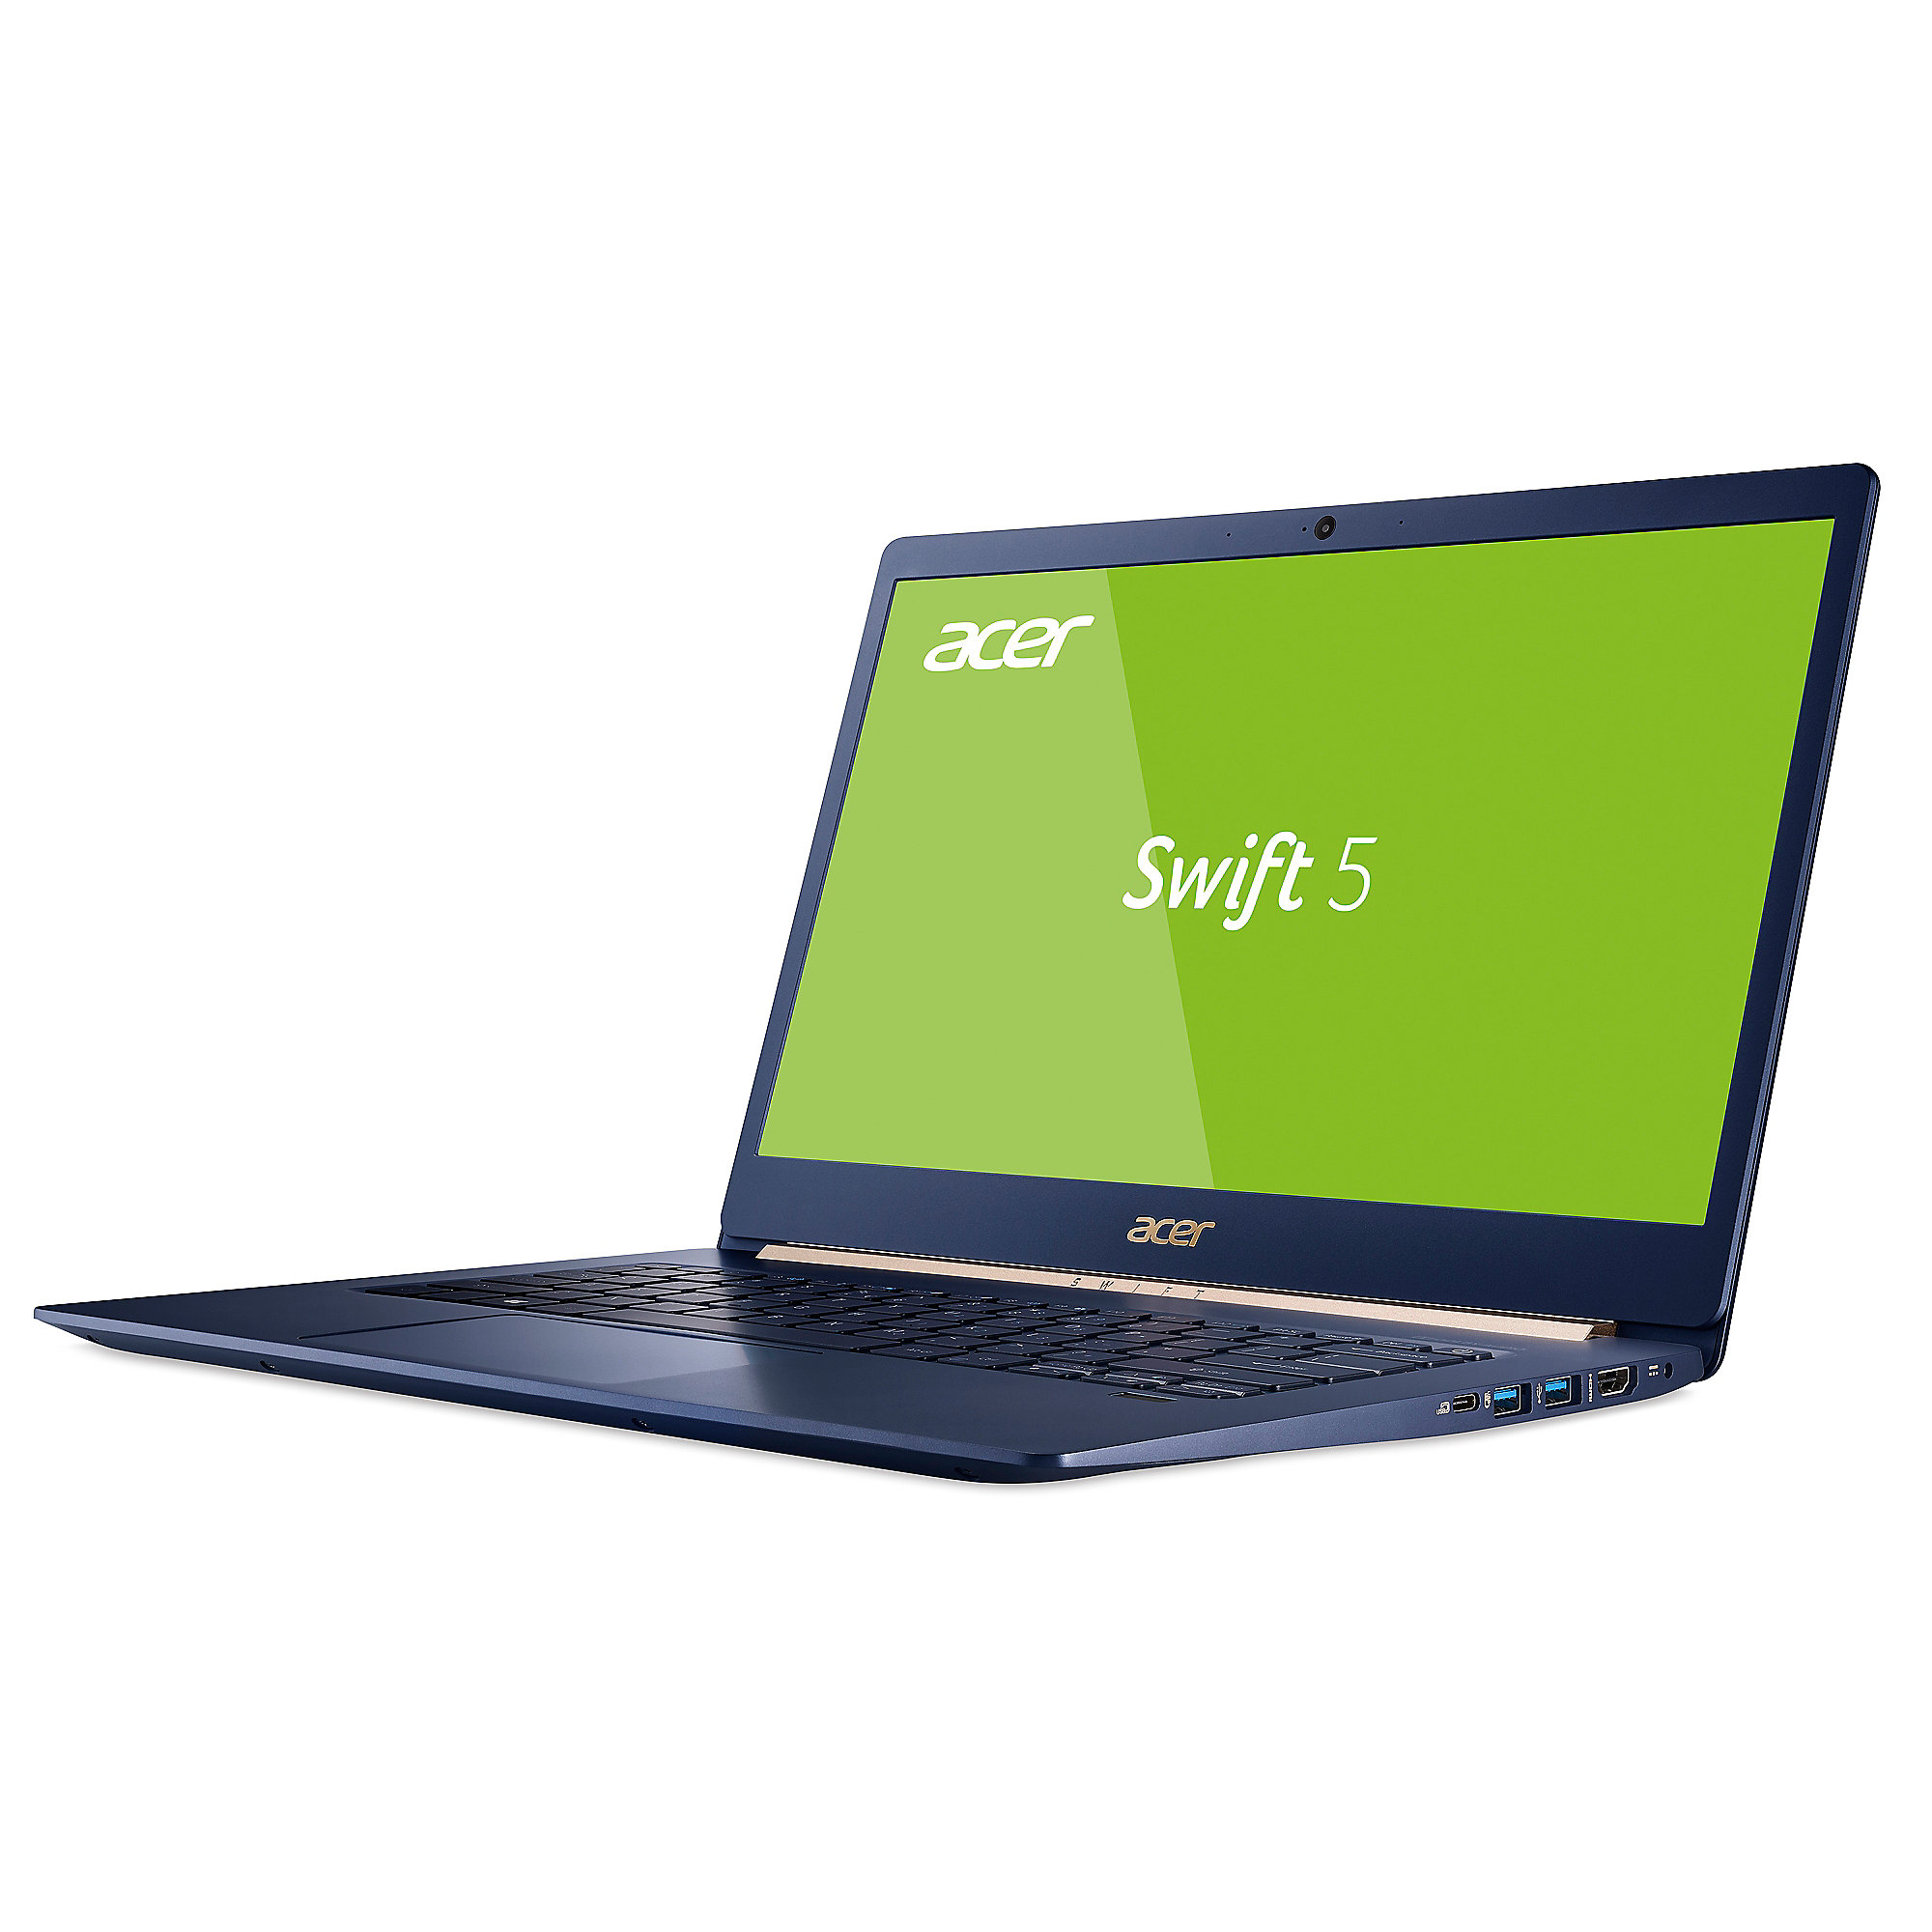 "Acer Swift 5 SF514-52T-819U i7-8550U 8GB/512GB PCIe SSD 14"" FHD Touch W10"